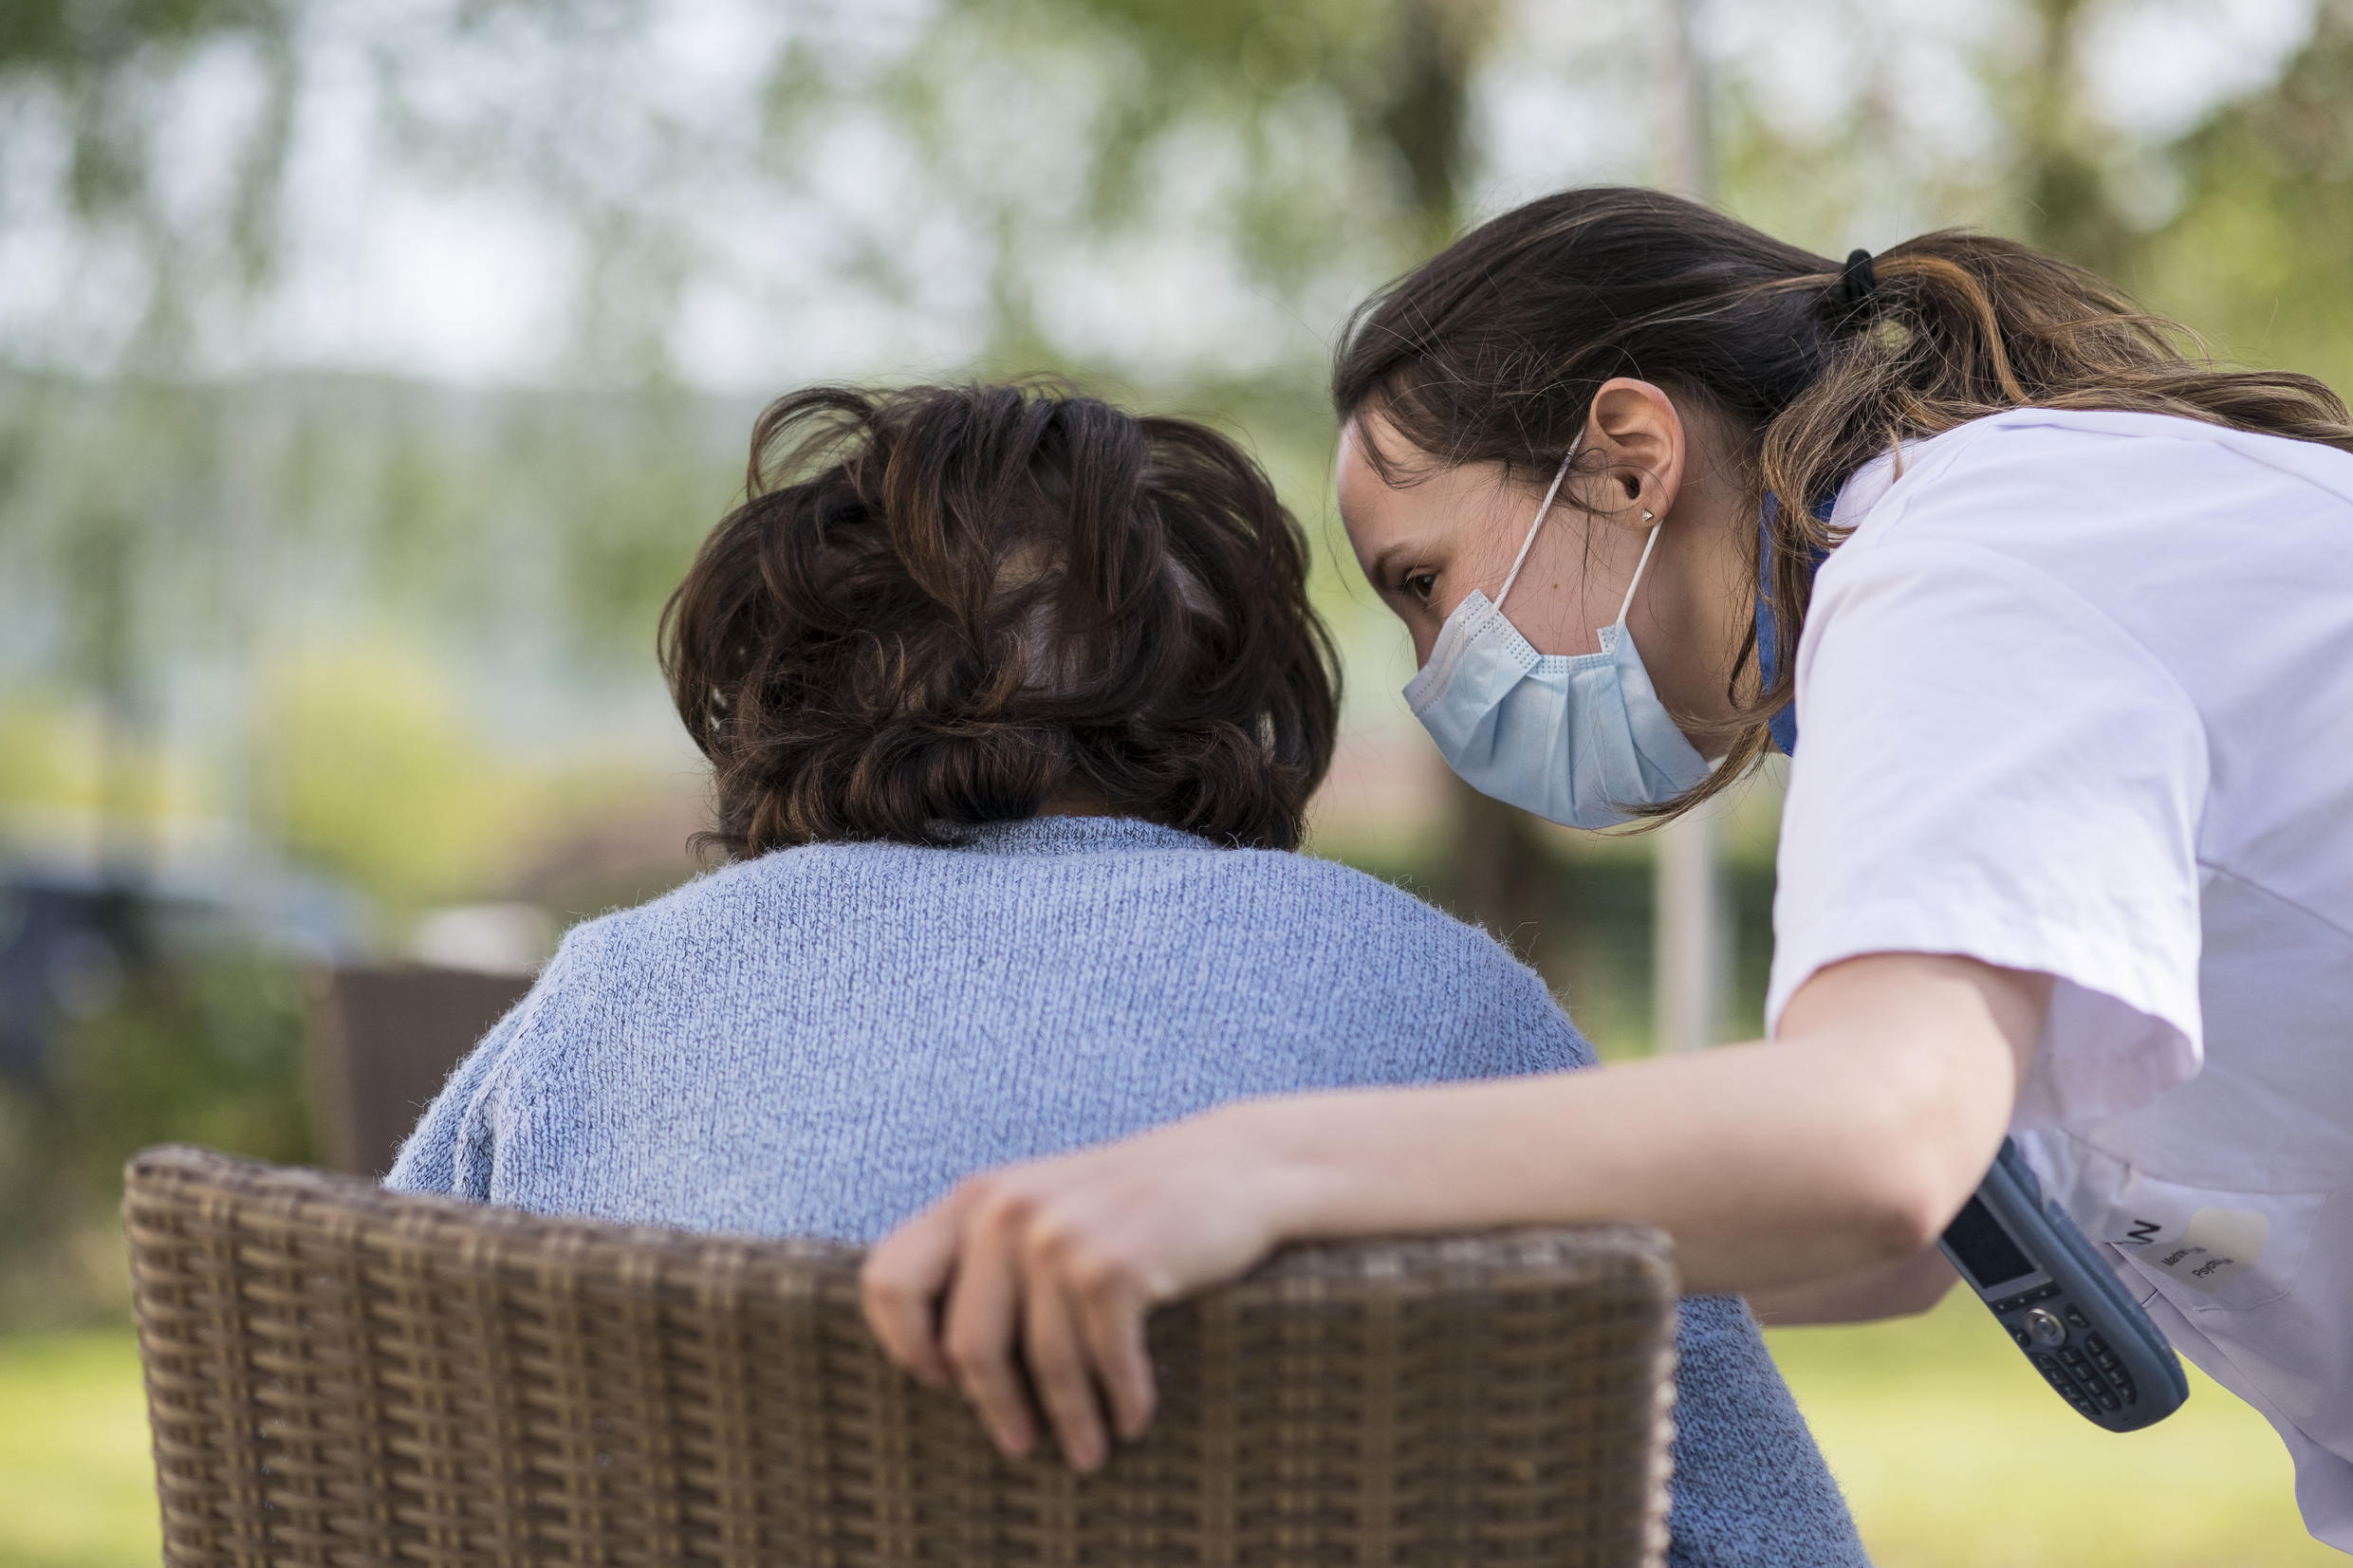 France's care homes for the elderly account for more than a third of all Covid-19 fatalities.